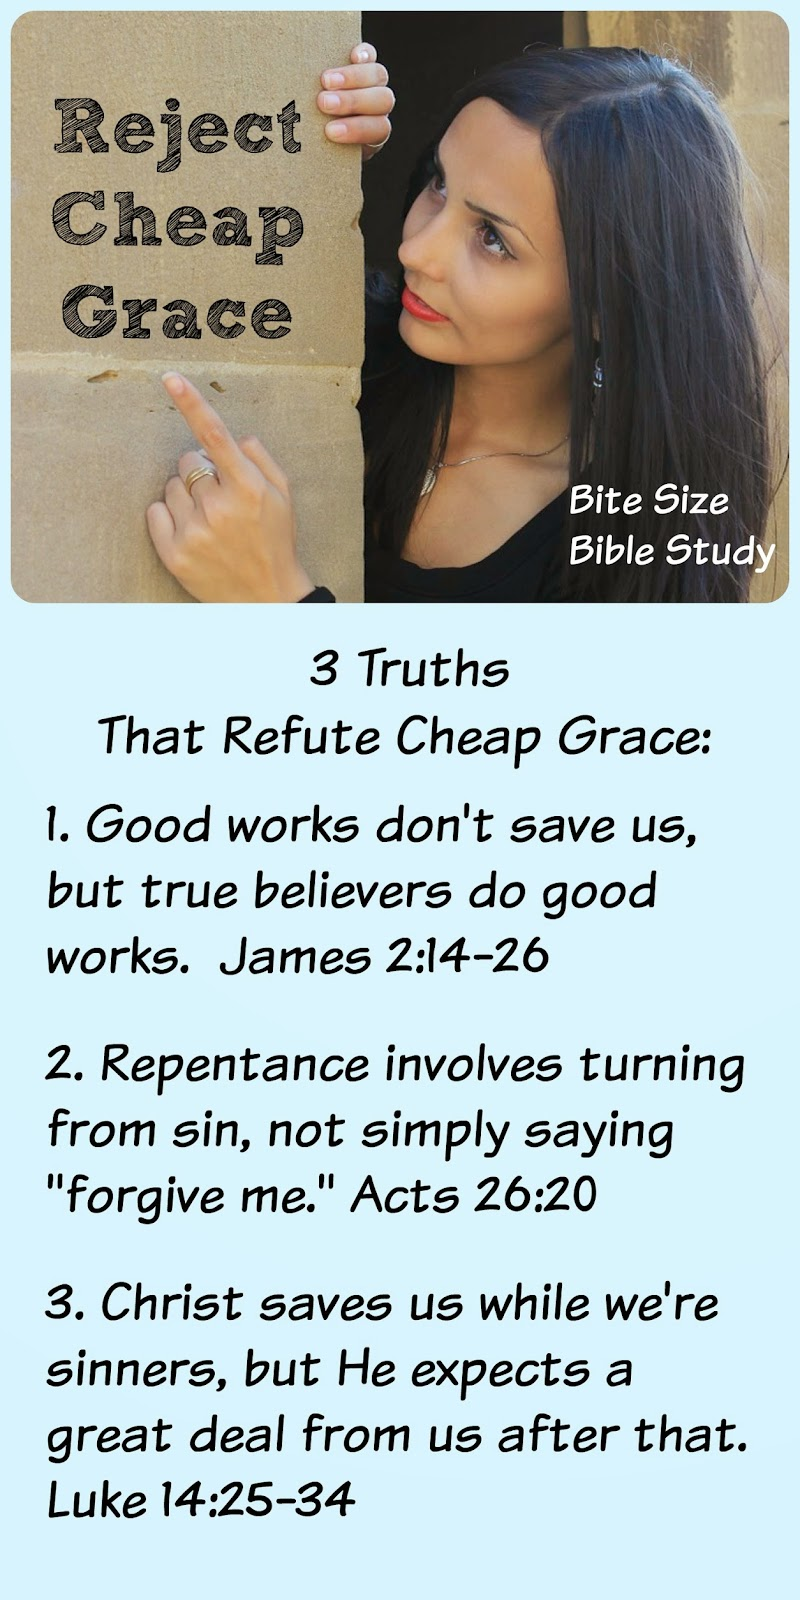 cheap grace, misunderstandings Christians Have, good works, repentance, God's love, half-hearted devotion to Christ